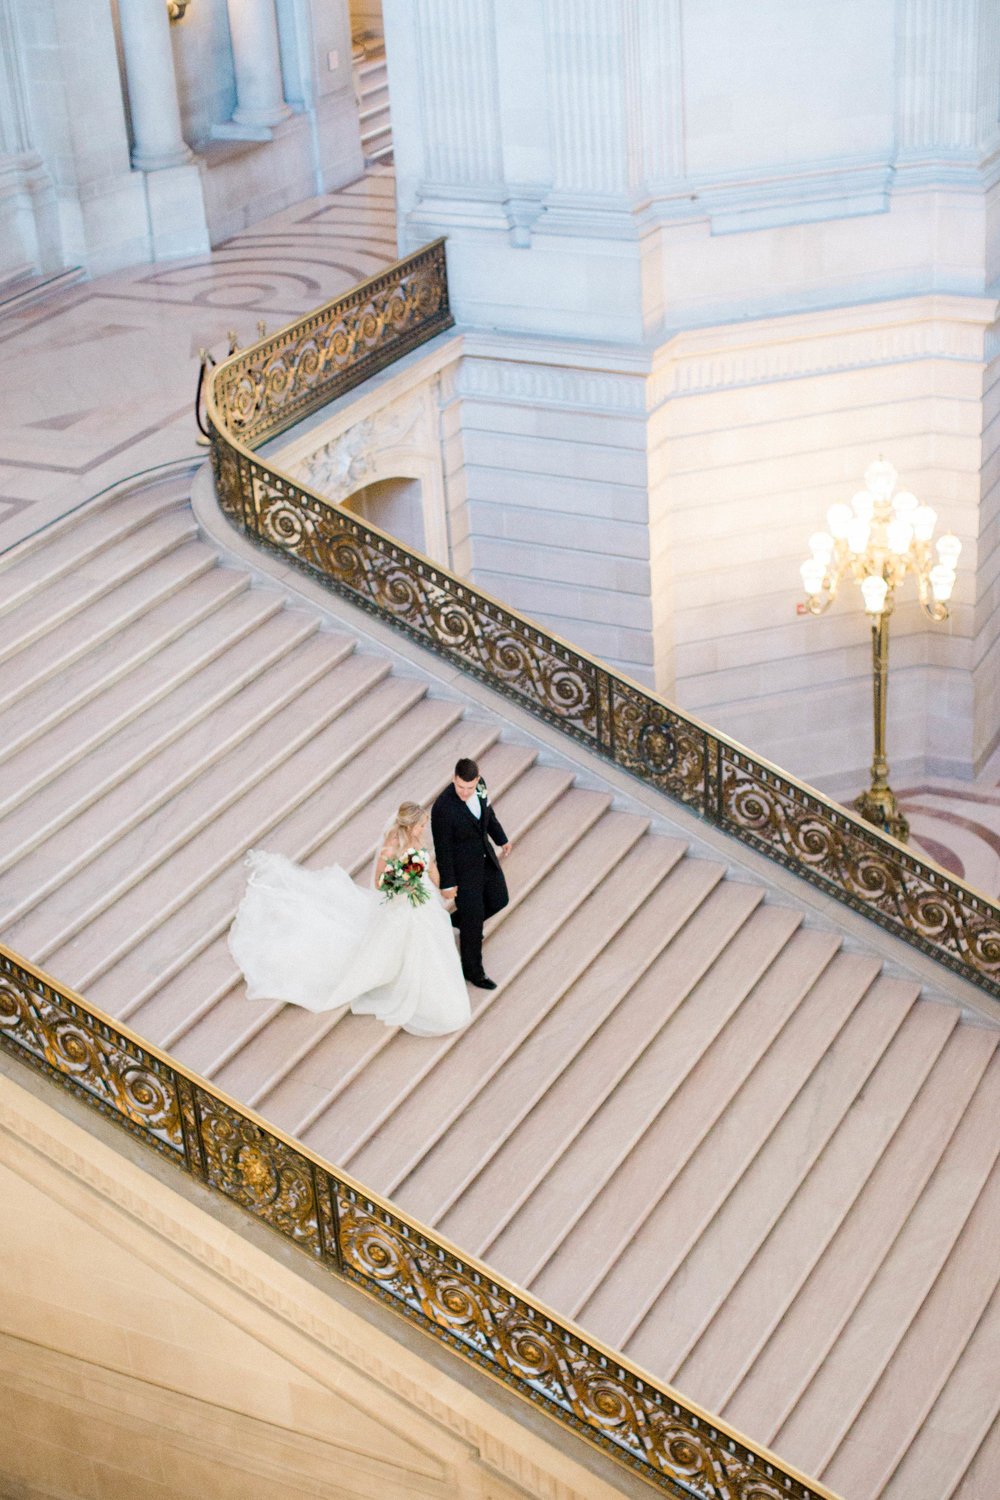 DennisRoyCoronel_Photography_SanFranciscoCityHall_Wedding-95.jpg